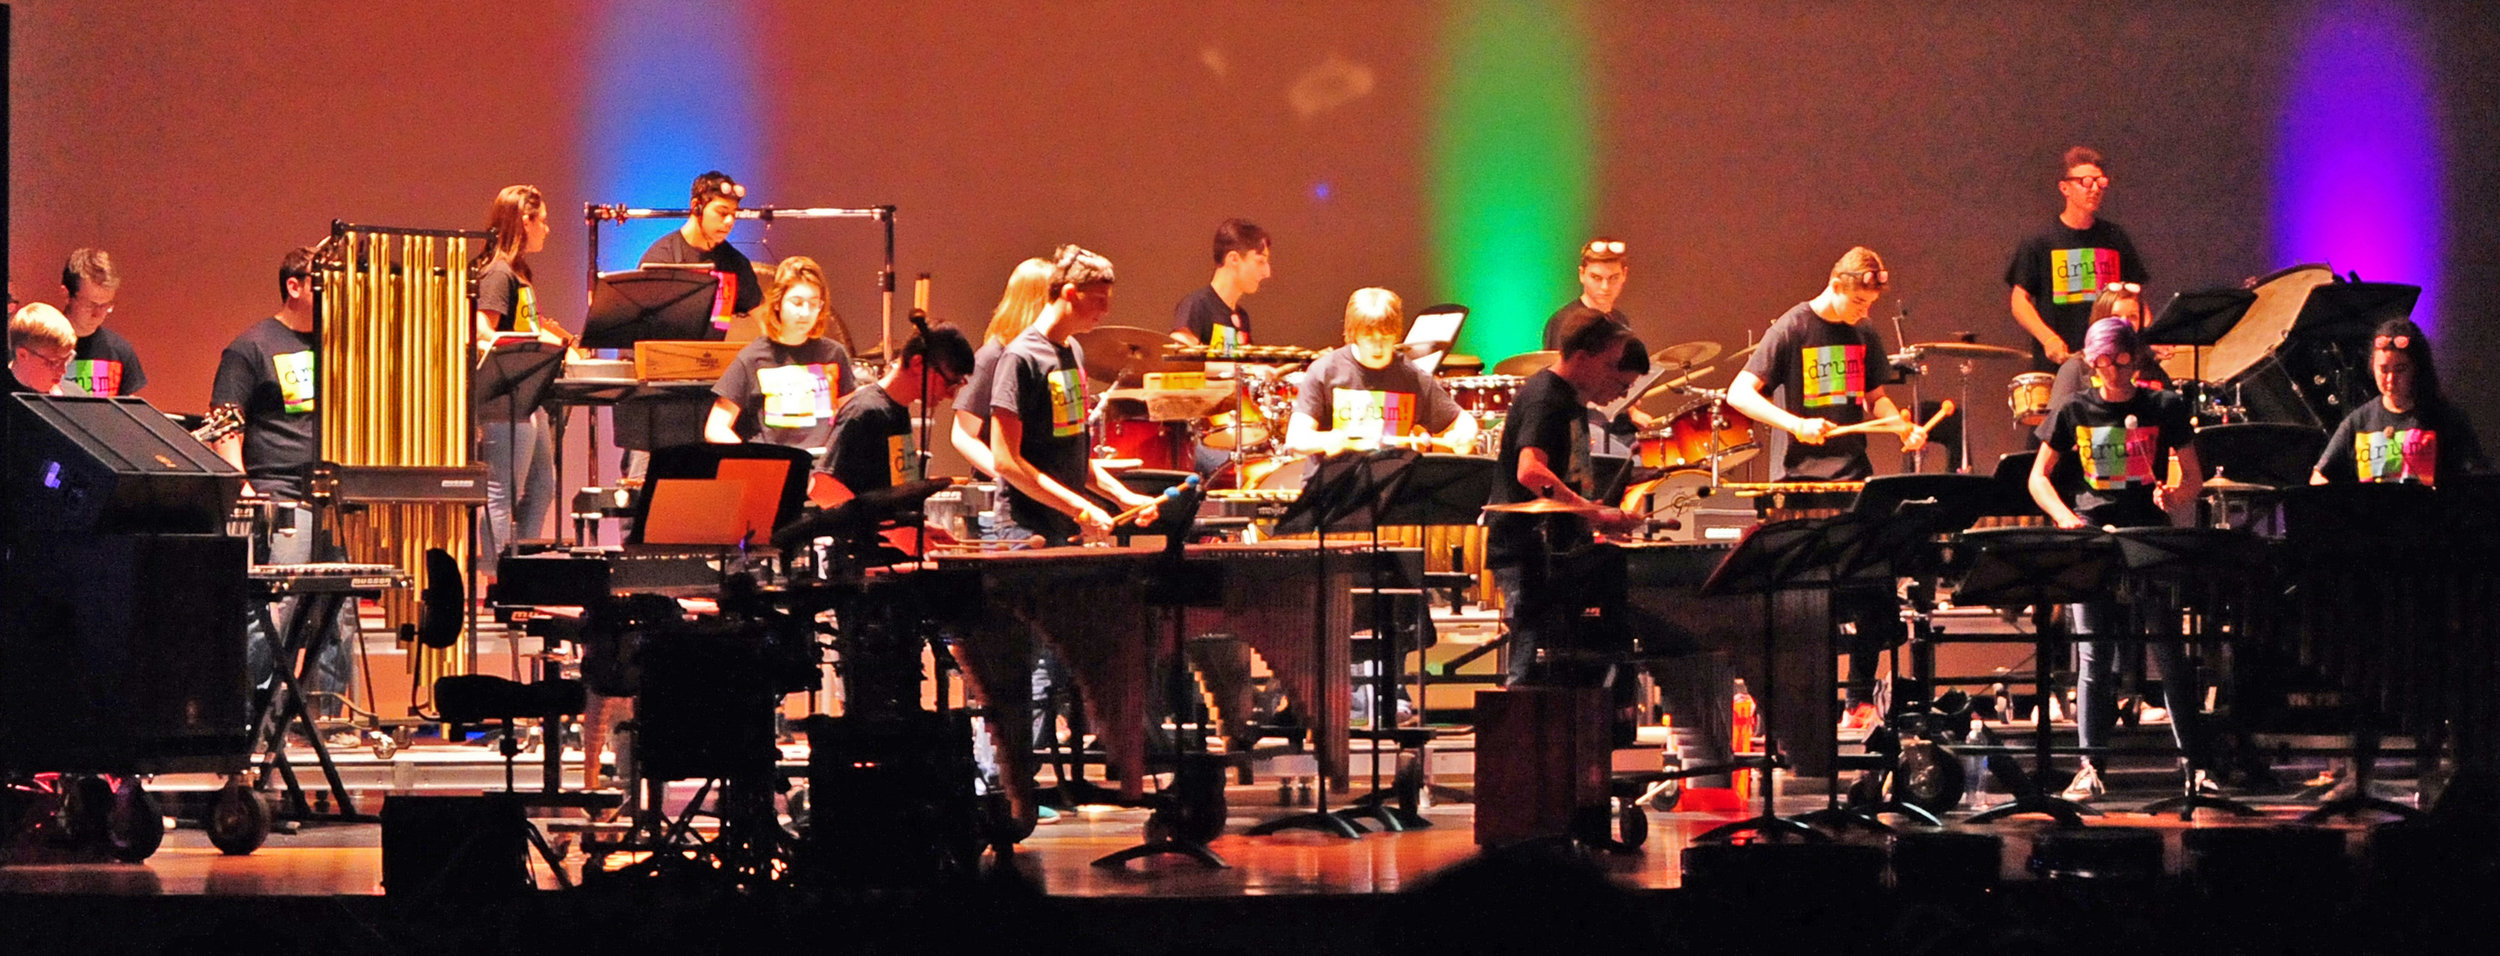 NICK INGRAM/Citizen photo Percussionists perform the opening number during the drum! Platte County Percussion Showcase held Friday, May 5 in the Wilson Center for the Performing Arts at Platte County High School. Students participating ranged from sixth graders to seniors.